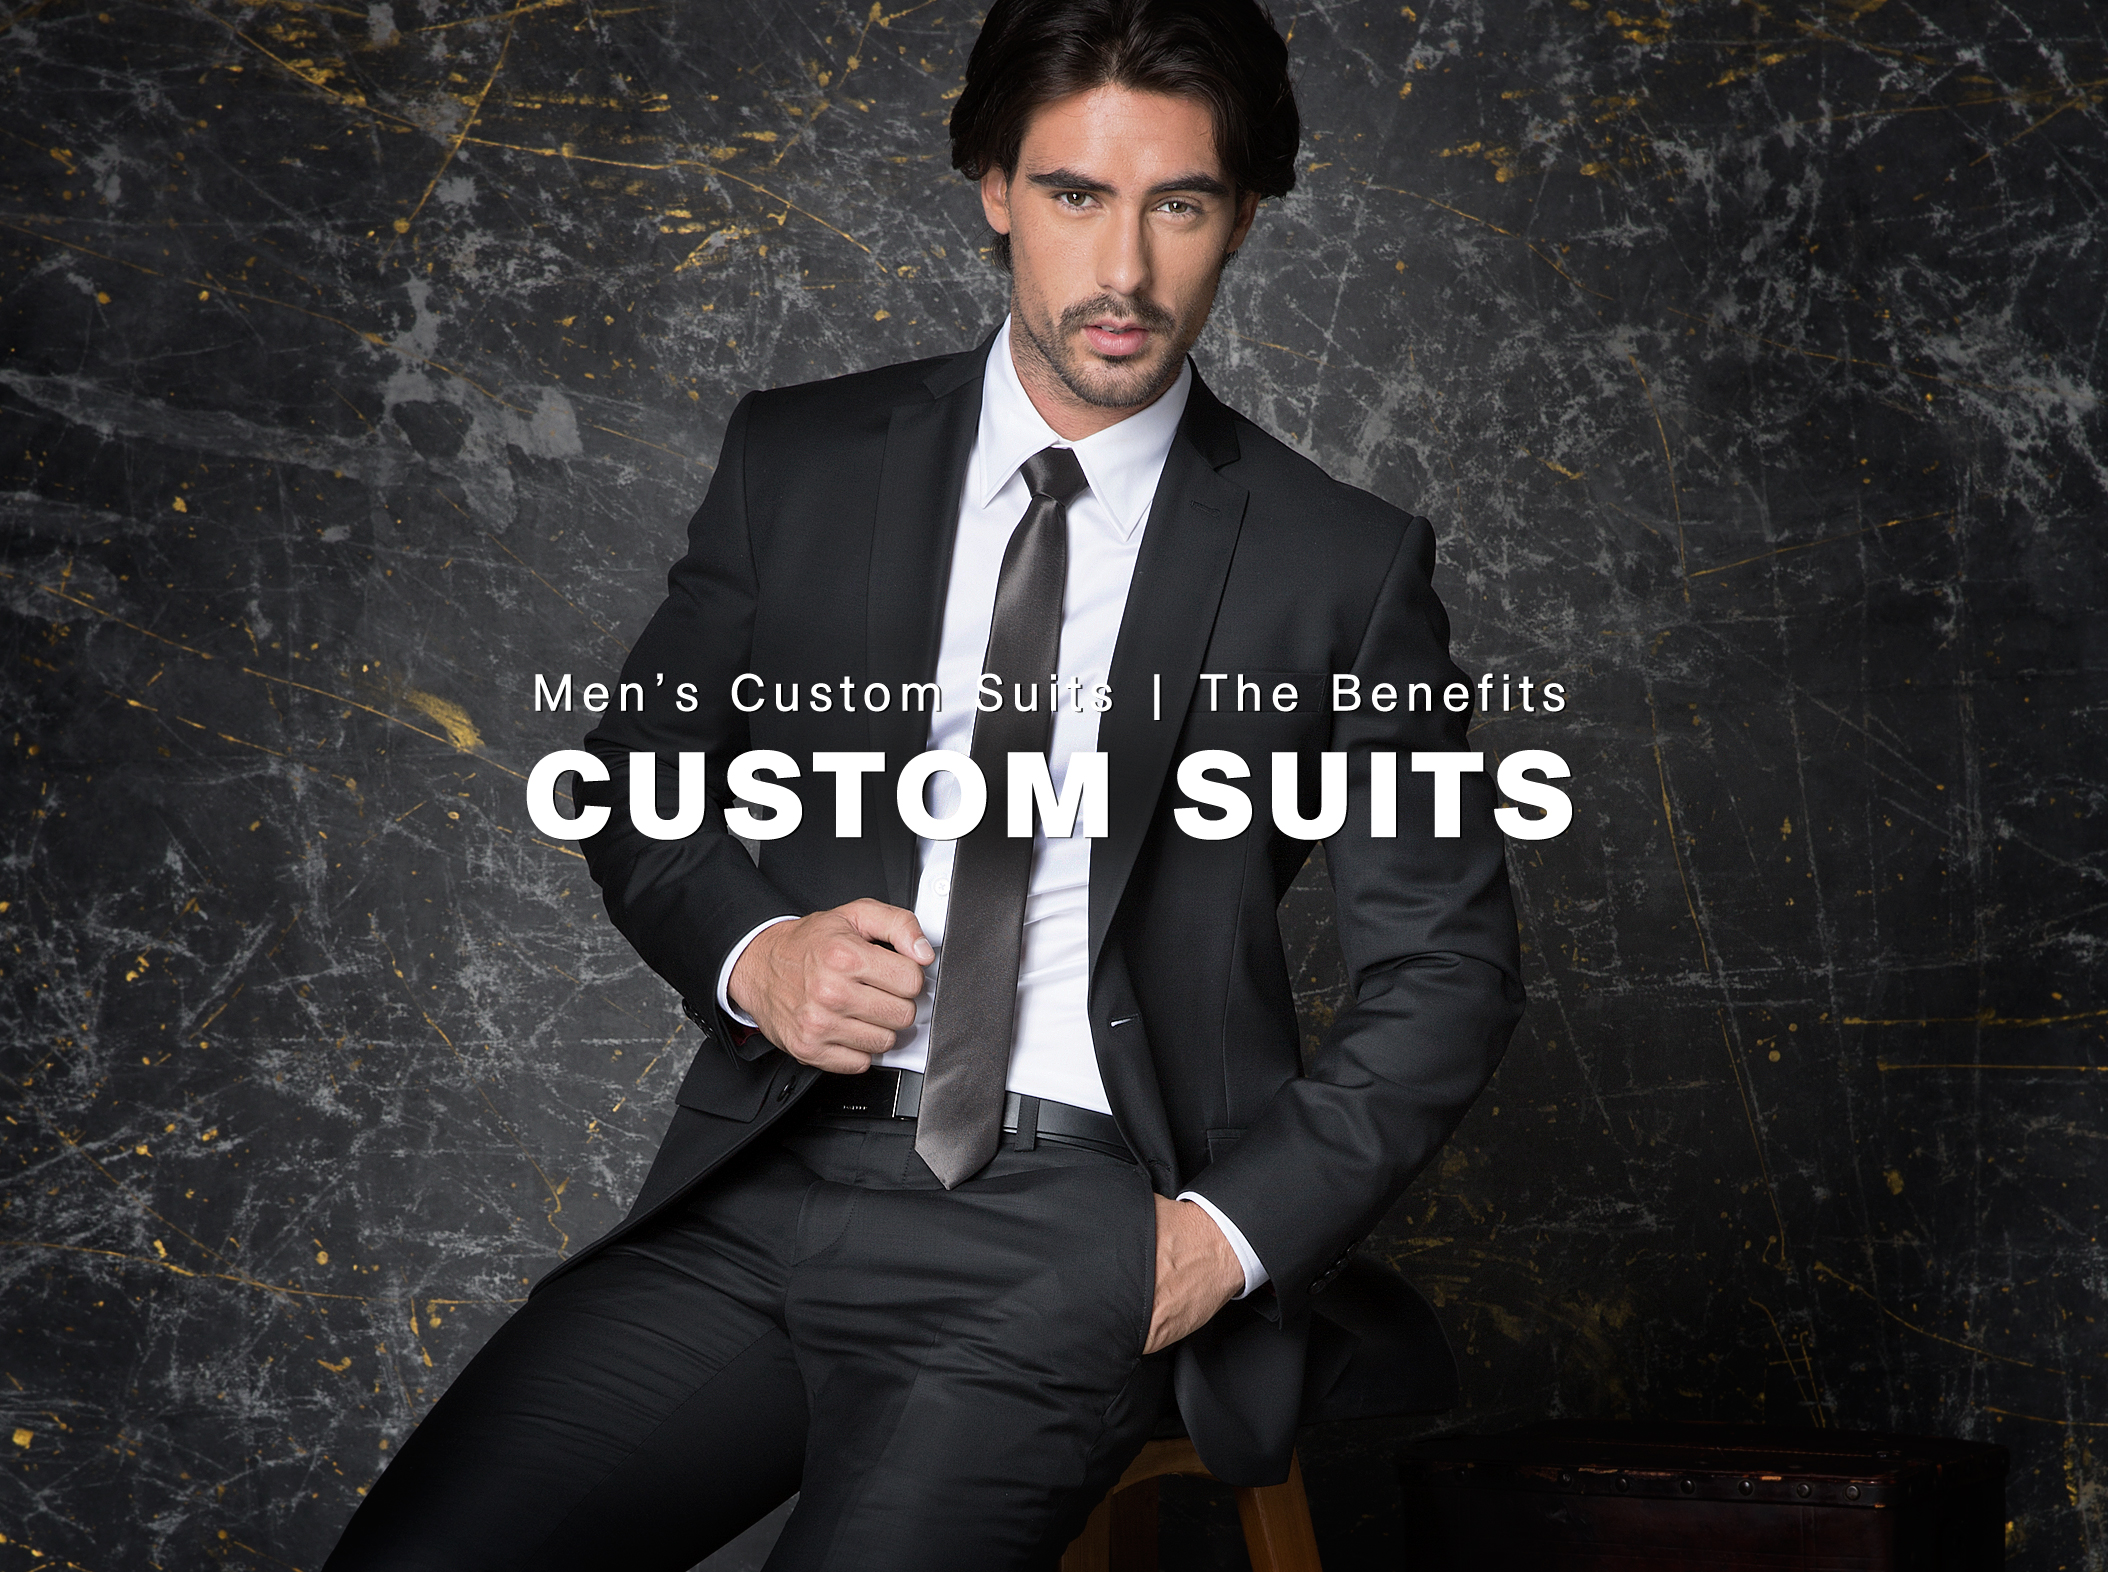 Men's Custom Suits | The Benefits